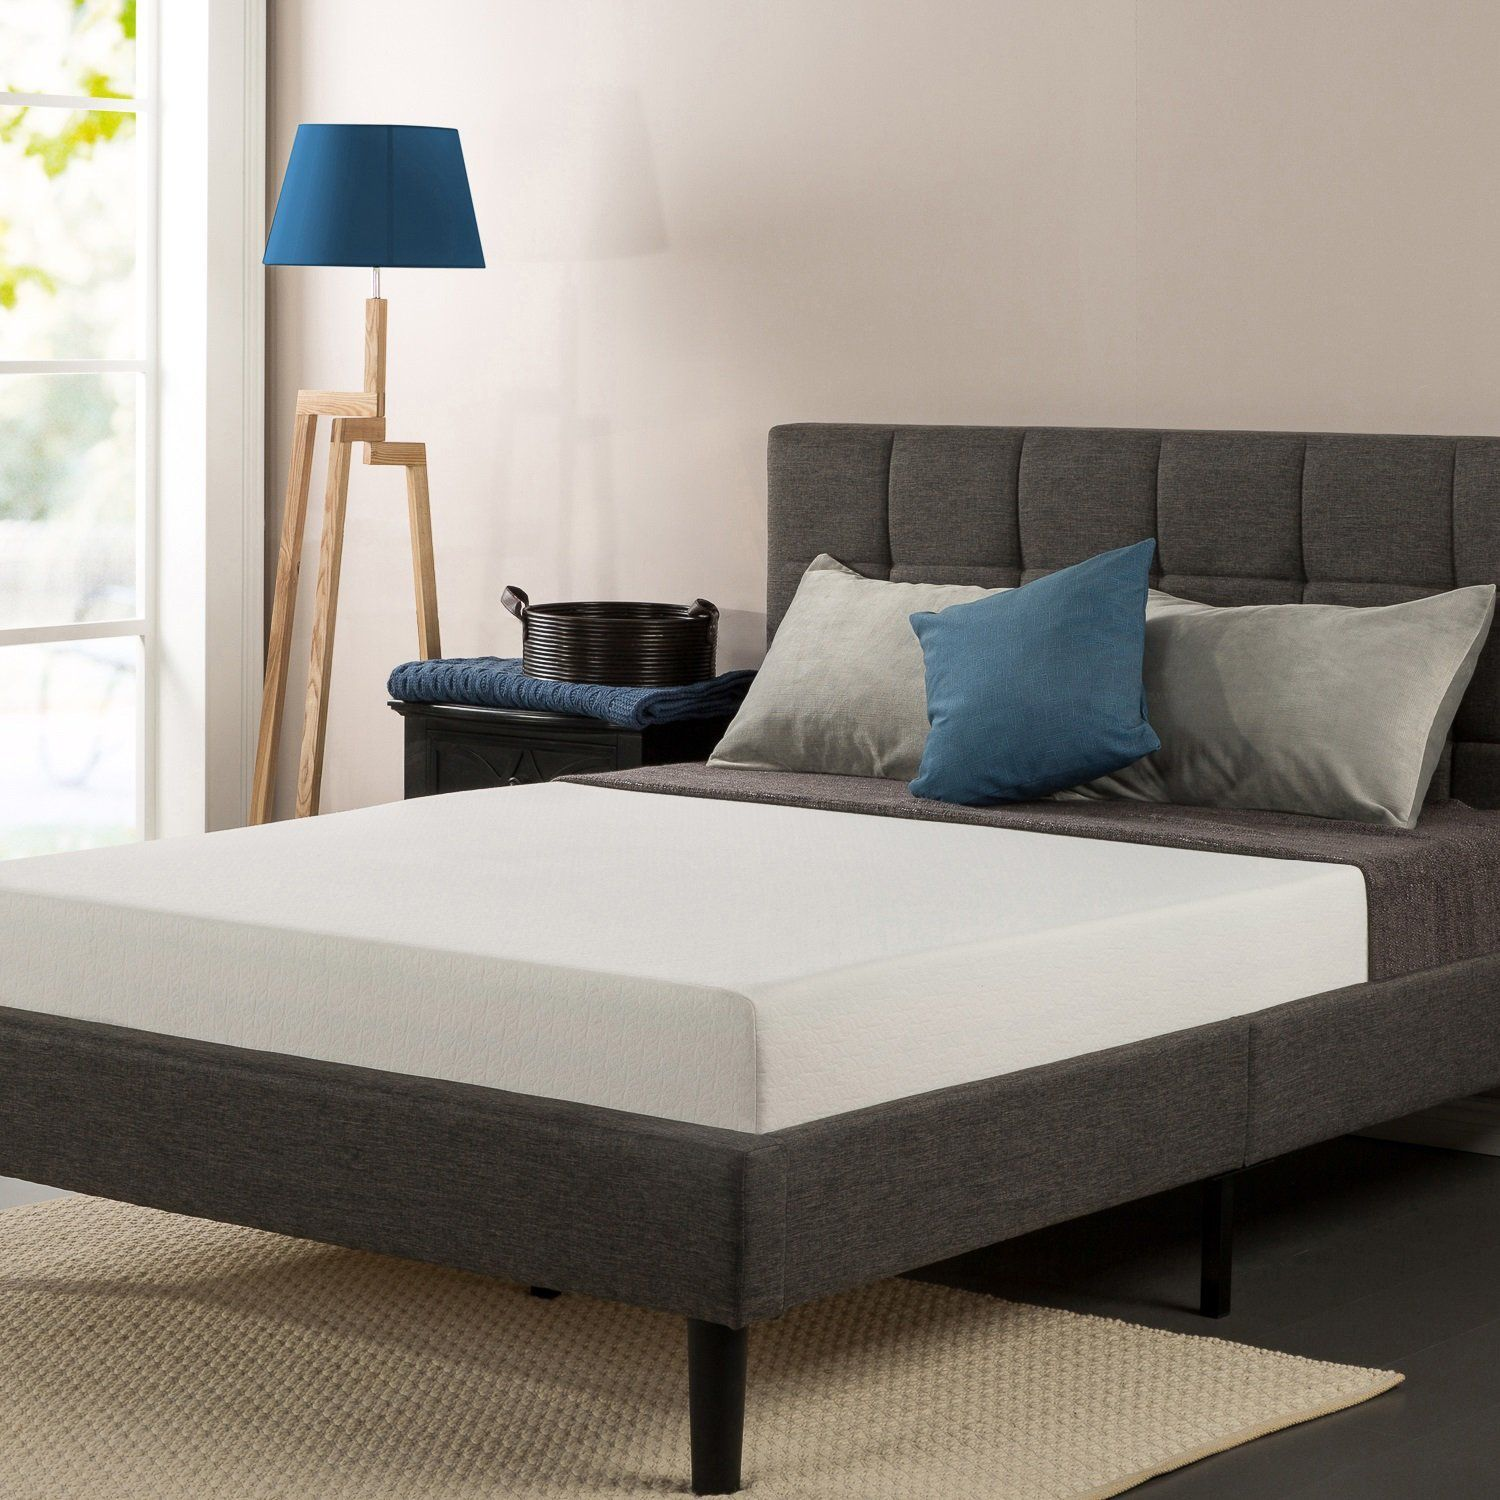 King Size Bed Small Room Ideas